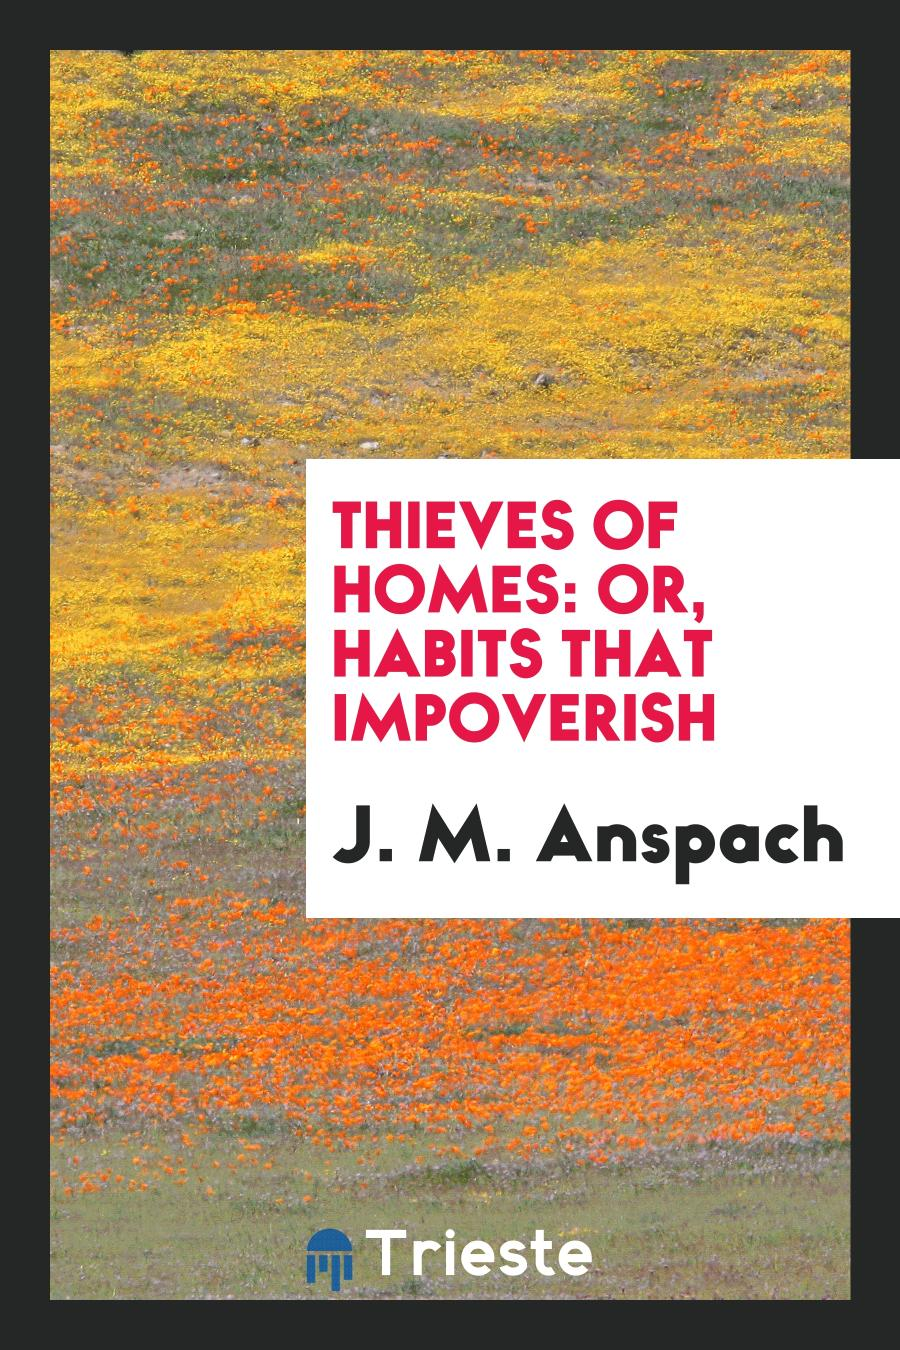 Thieves of Homes: Or, Habits That Impoverish